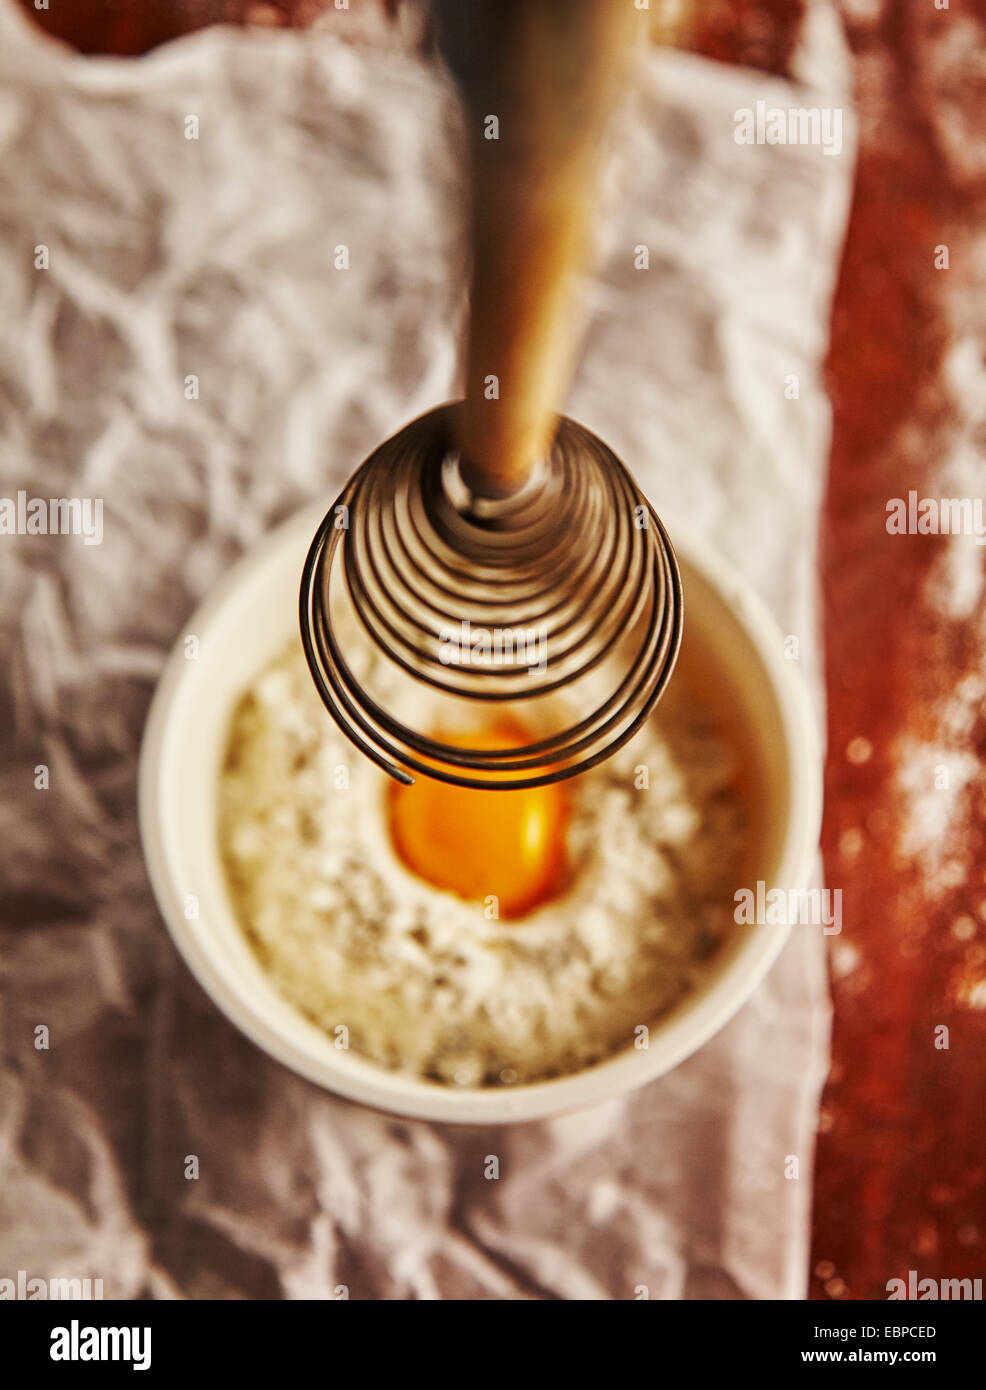 vintage whisk over a bowl with flour and an egg on top of parchment paper and wood table - Stock Image